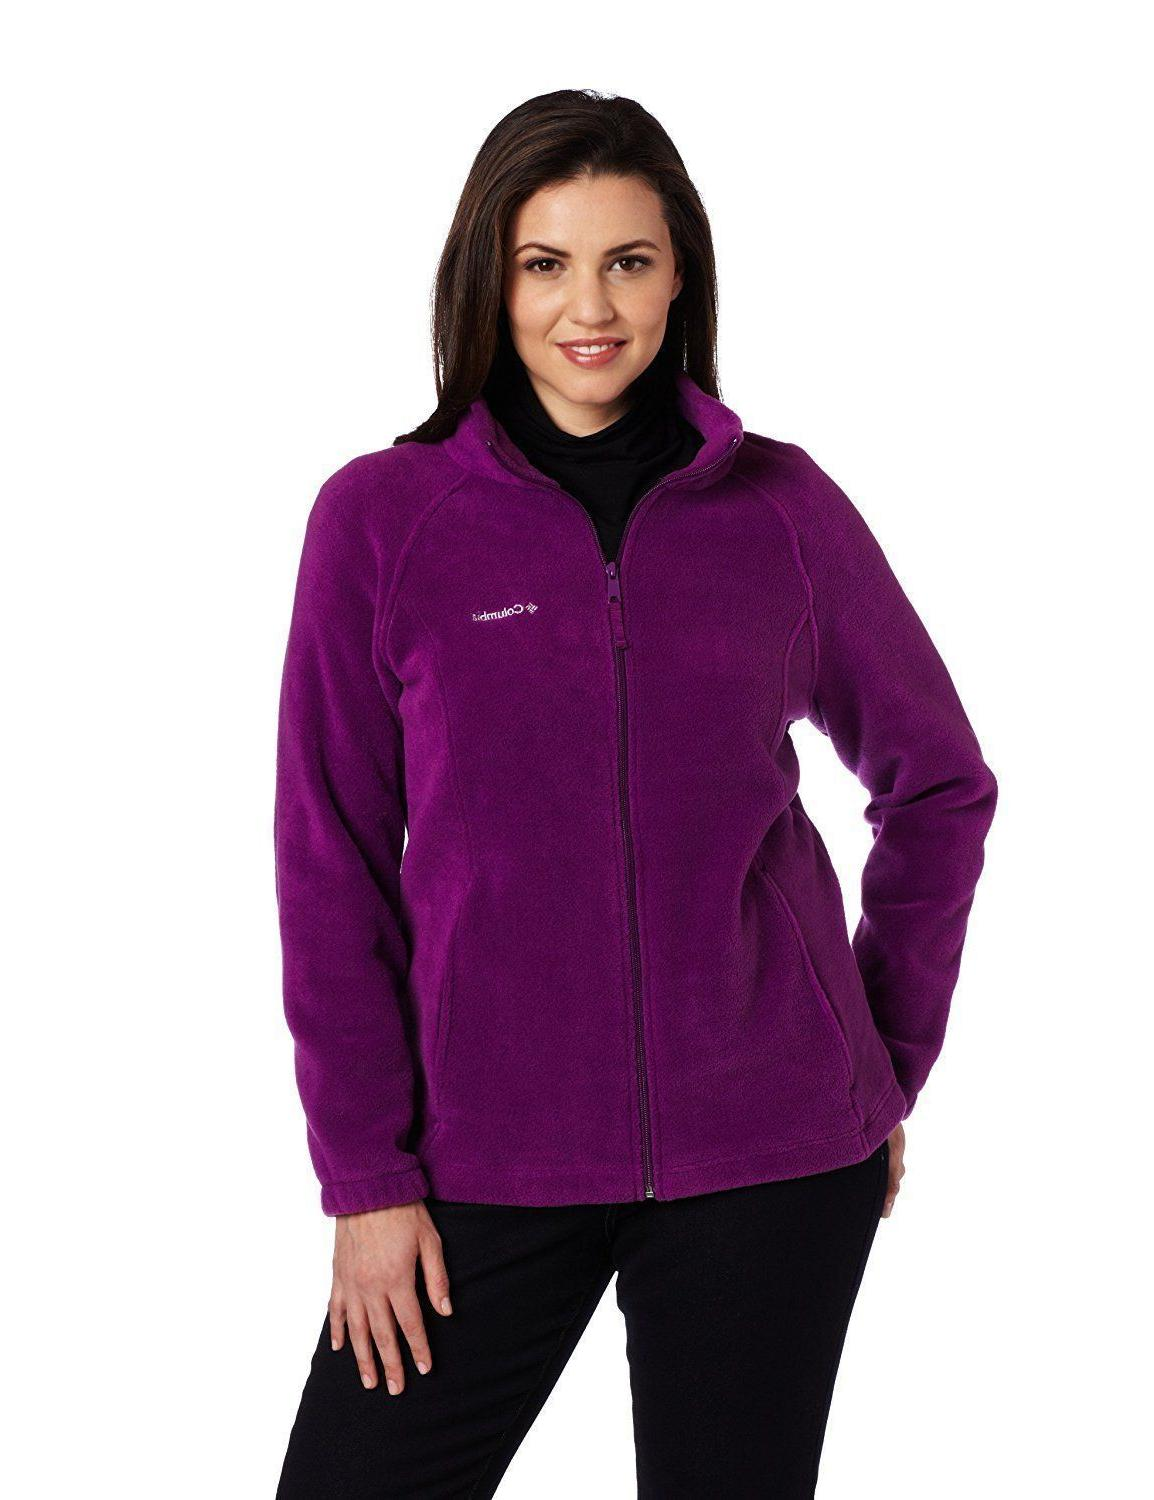 AUTHENTIC WOMEN's Full-Zip Jacket XS-S-M-L-XL-1X-2X-3X